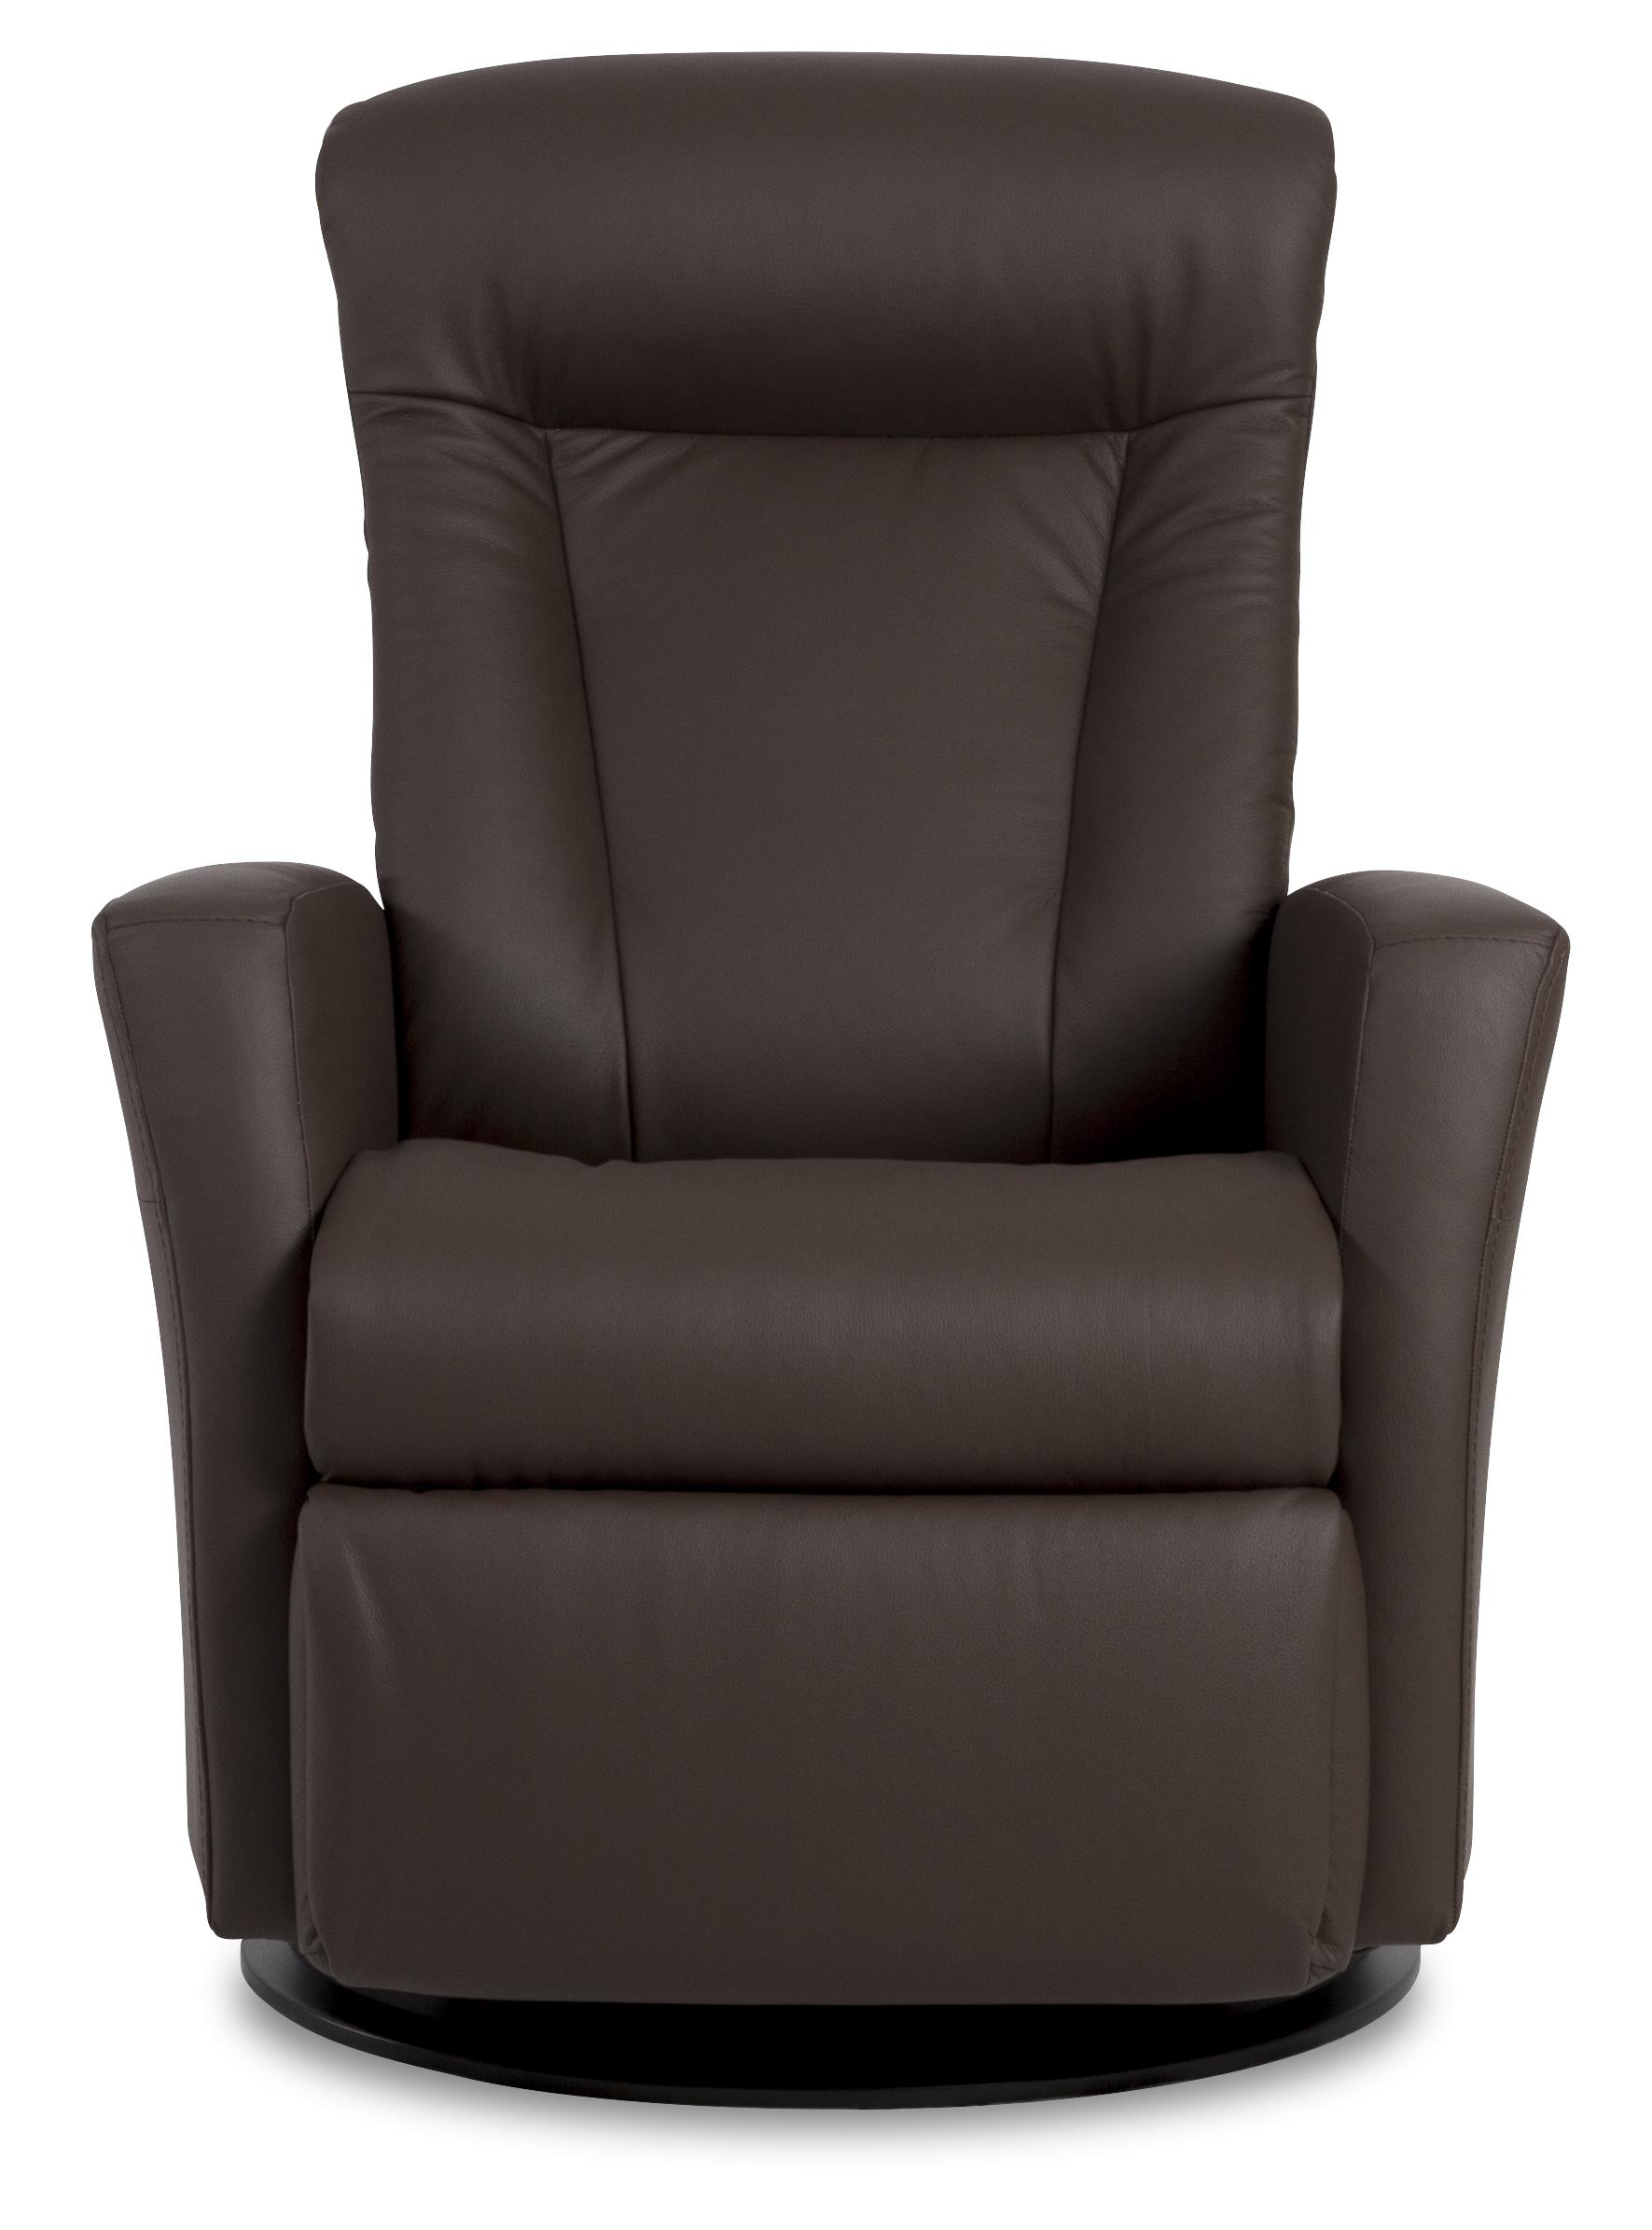 IMG Norway Prince Prince Power Relaxer Recliner - Item Number: 201RG-P318